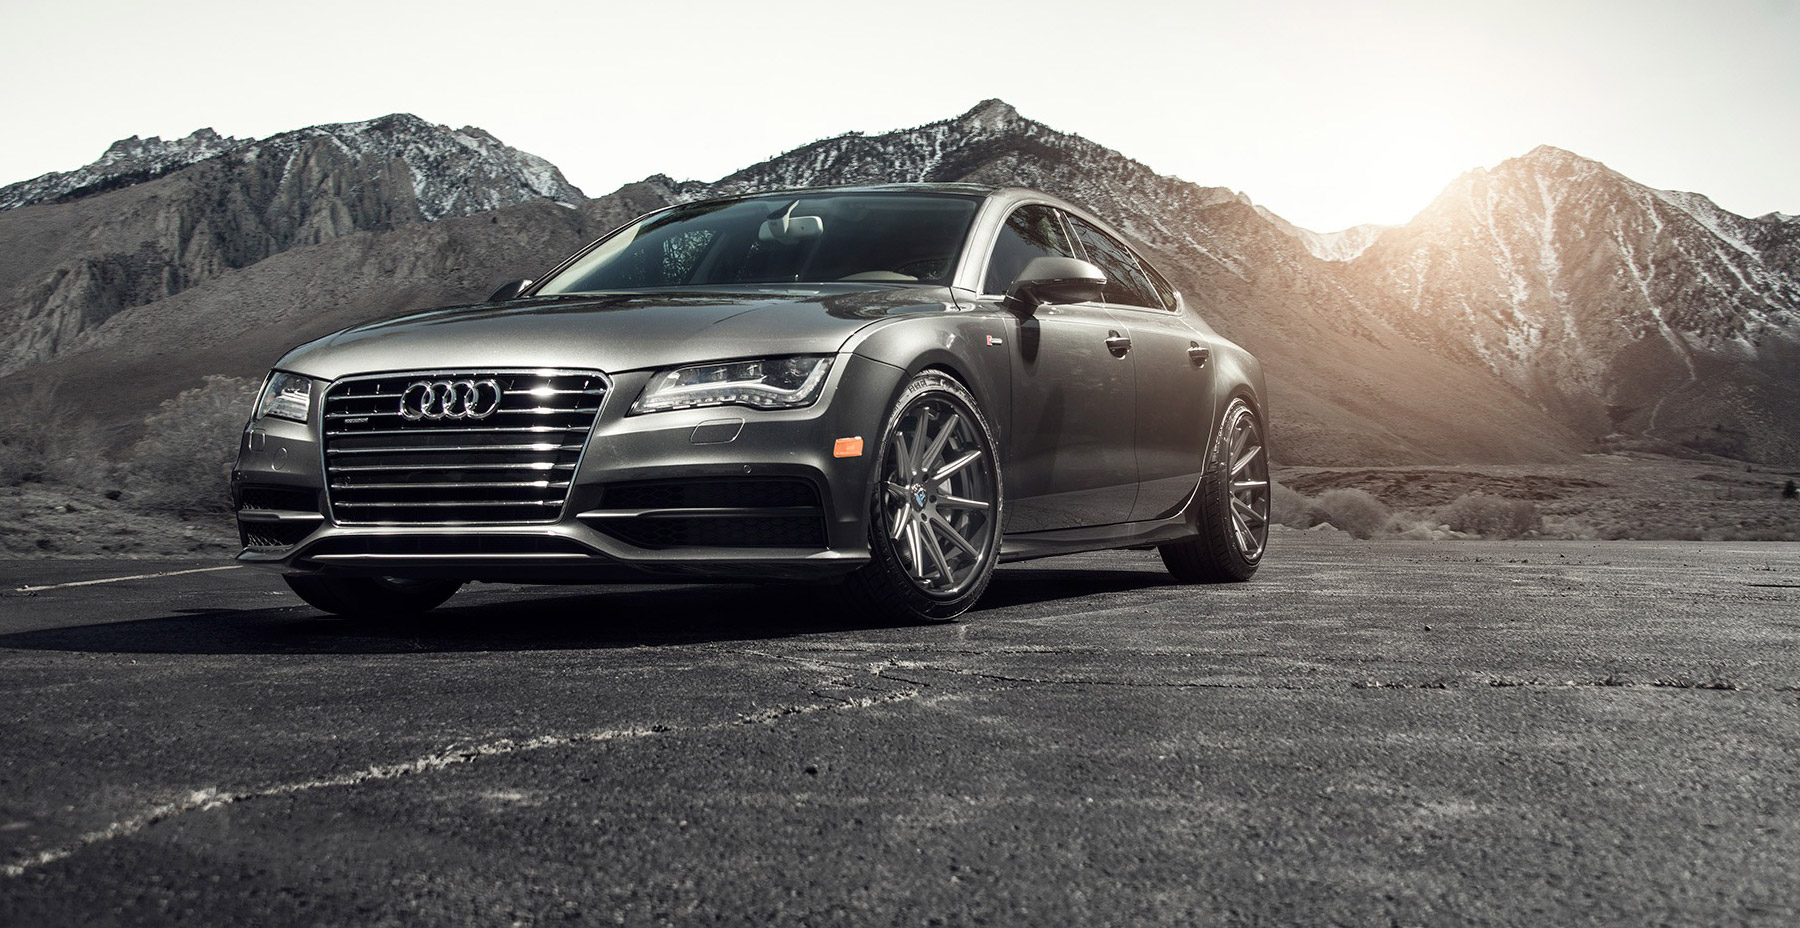 Grey Audi A7 x Rohana RC10 Wheels (Finished in Matte Graphite with Gloss Black Lip Wheel)